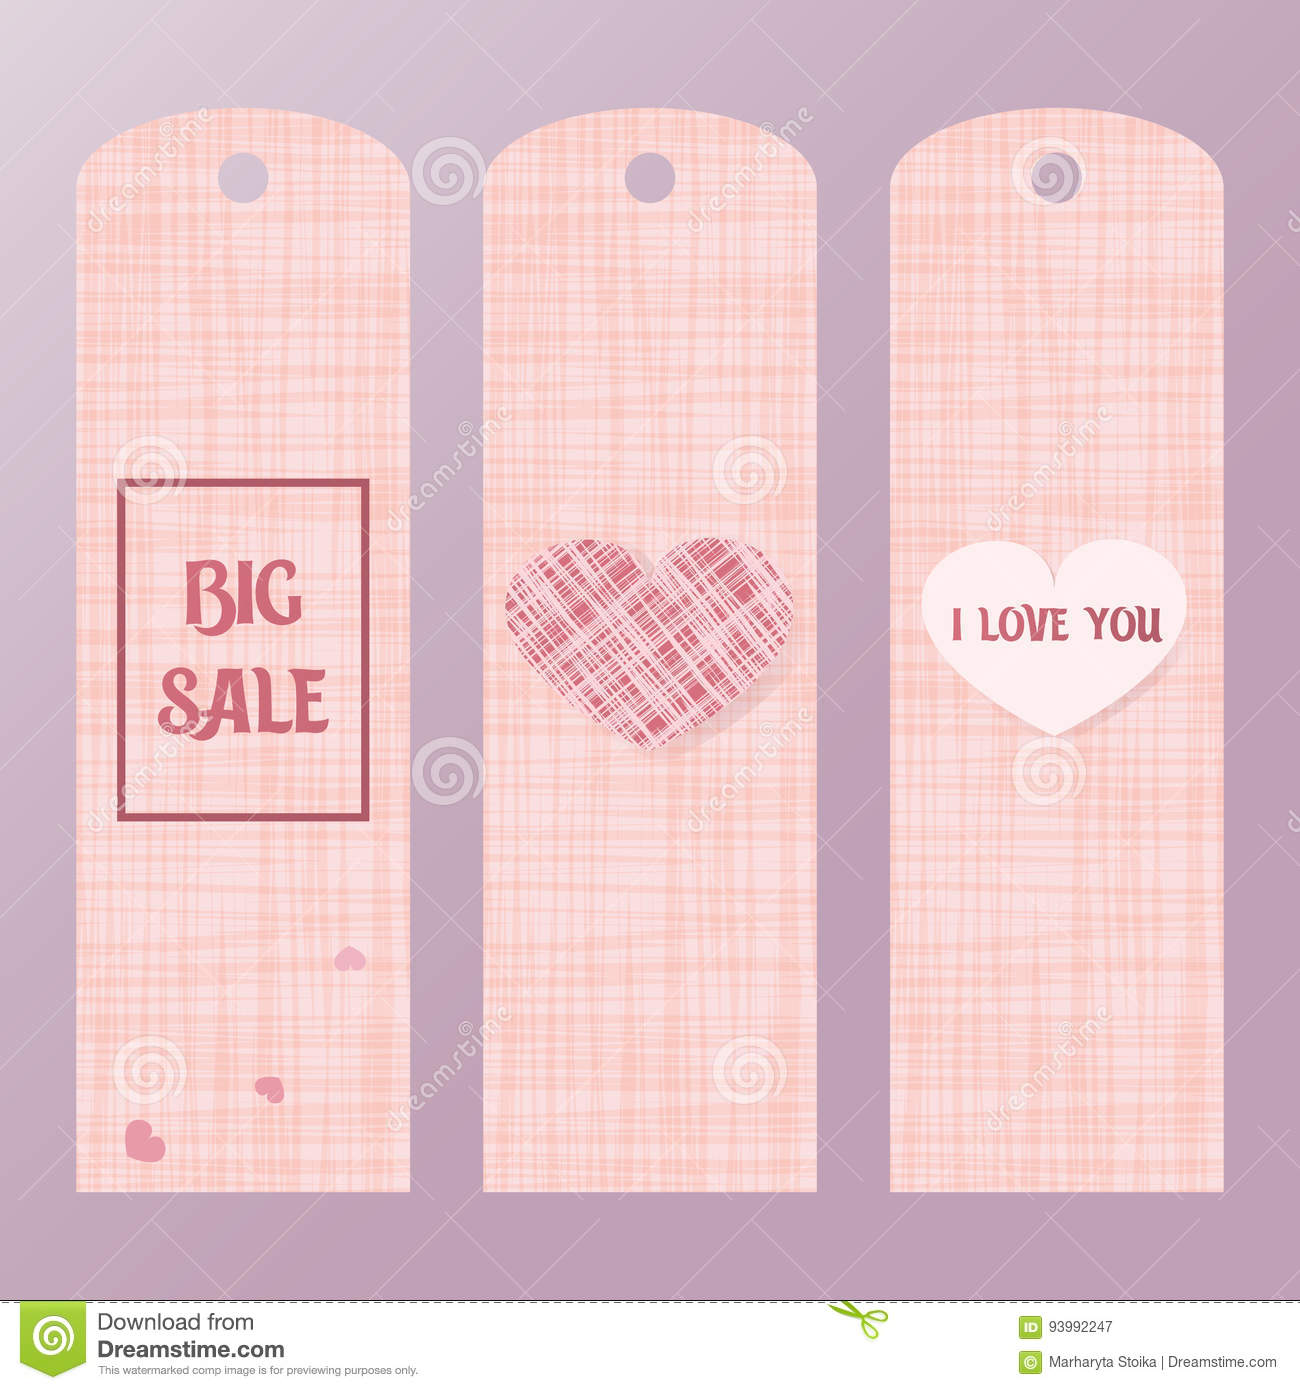 Pink tag for big sales with a heart. Label the price of goods pink colors.